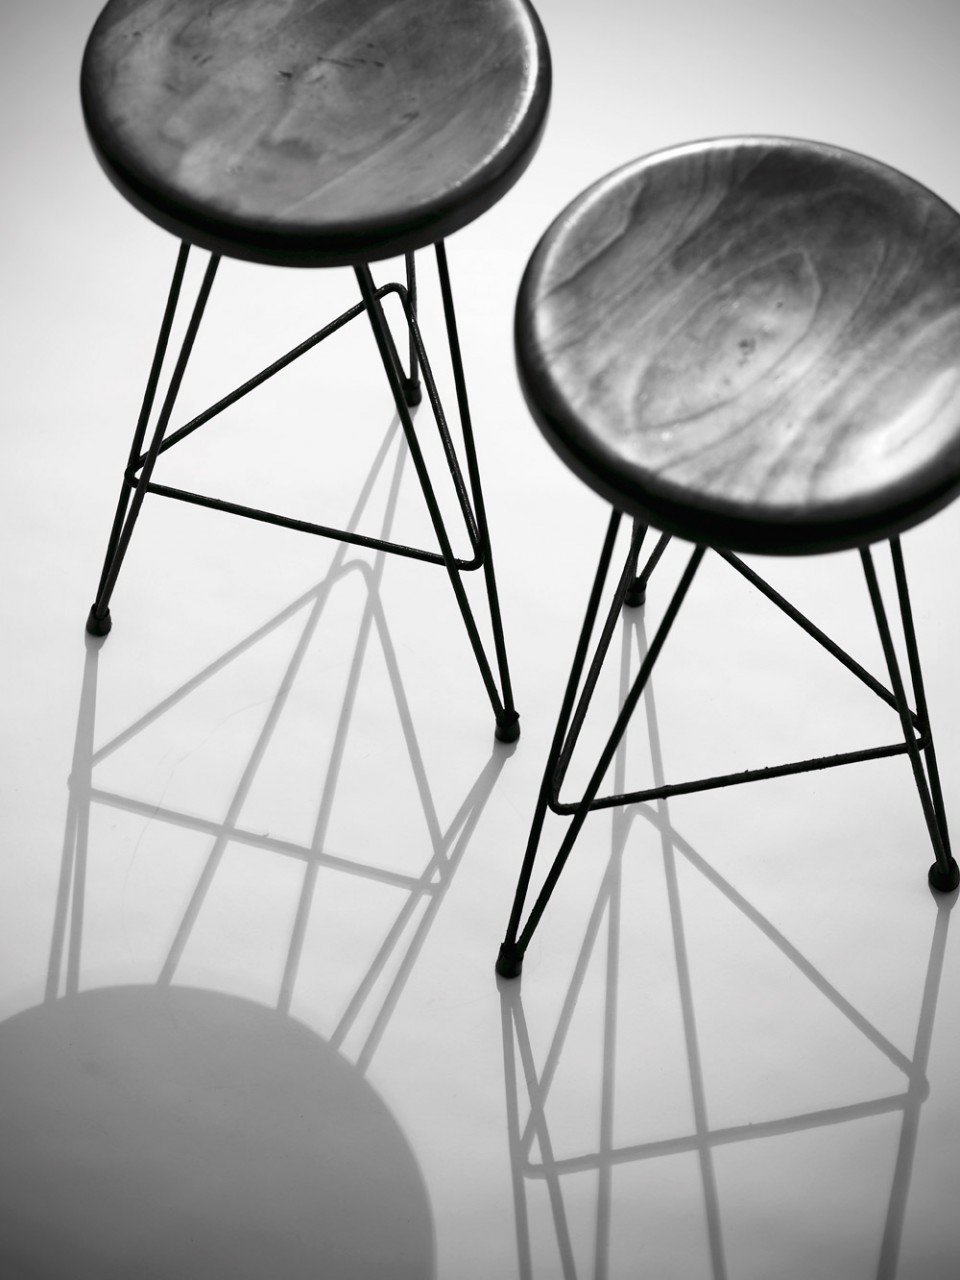 Personal-50's-Eames-Stools-081